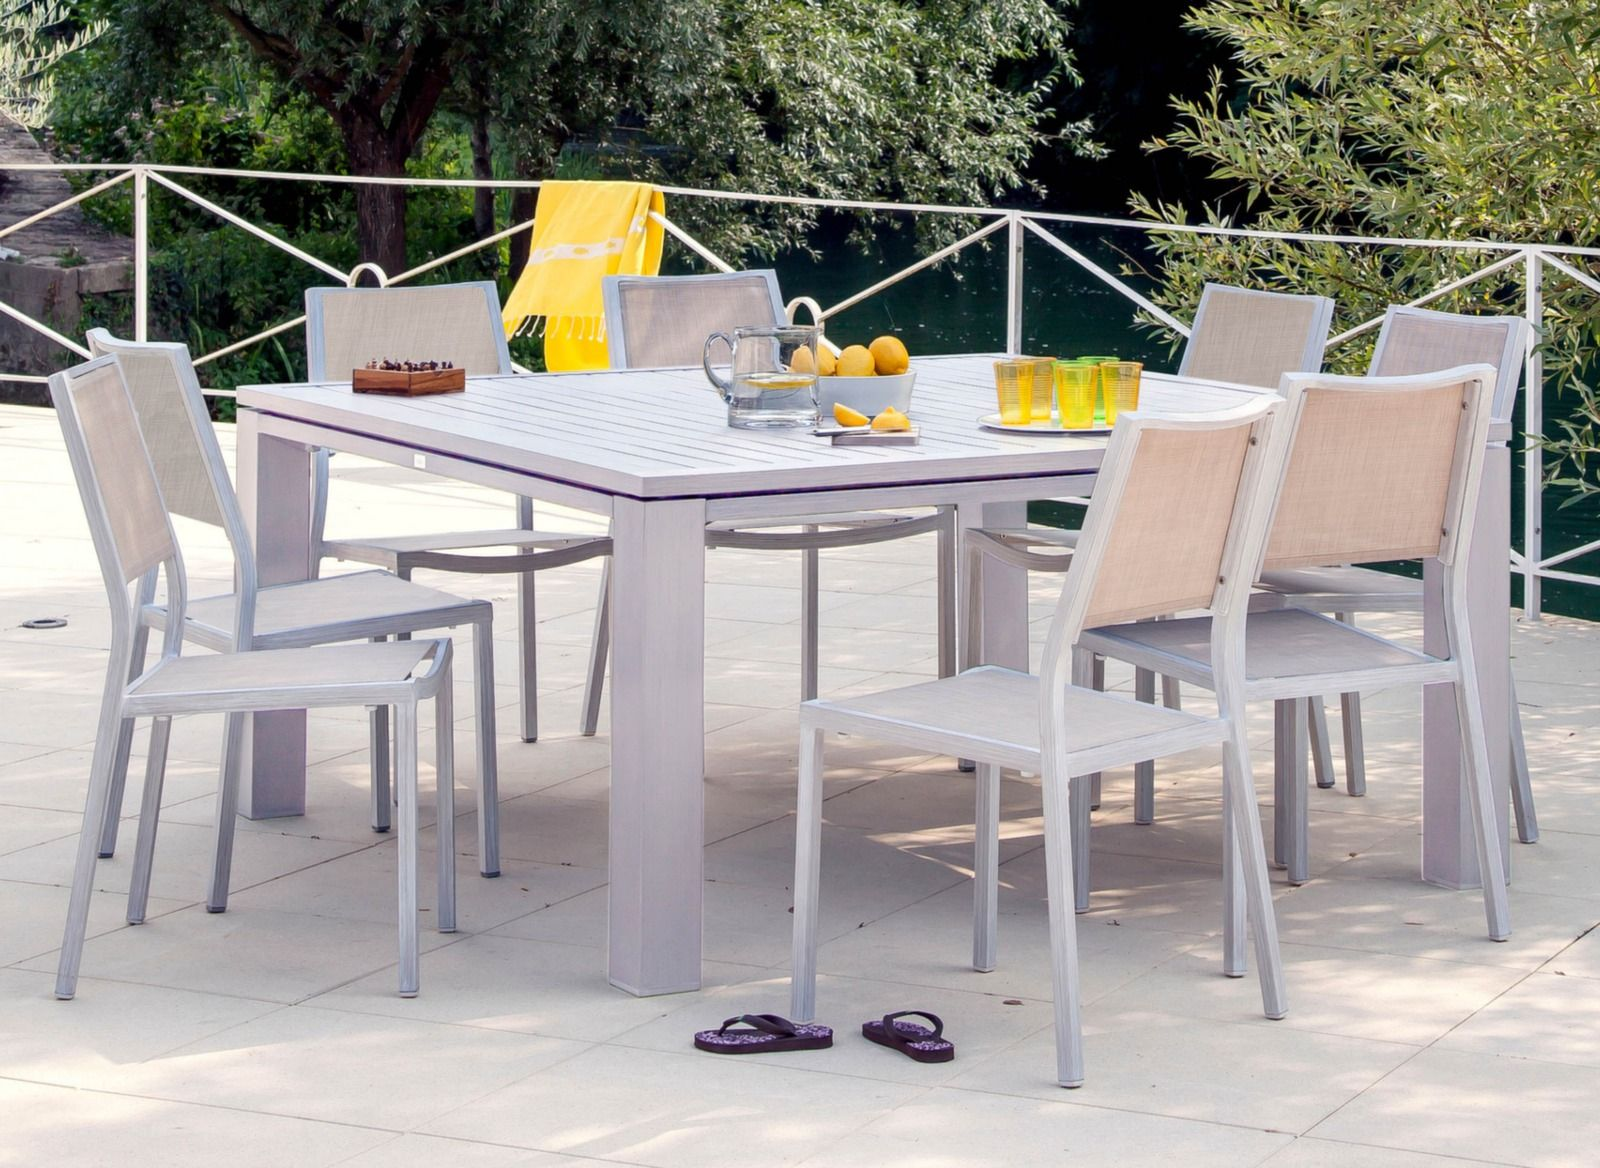 Table de jardin design carrée Fiero 160cm – Proloisirs | Mobilier ...